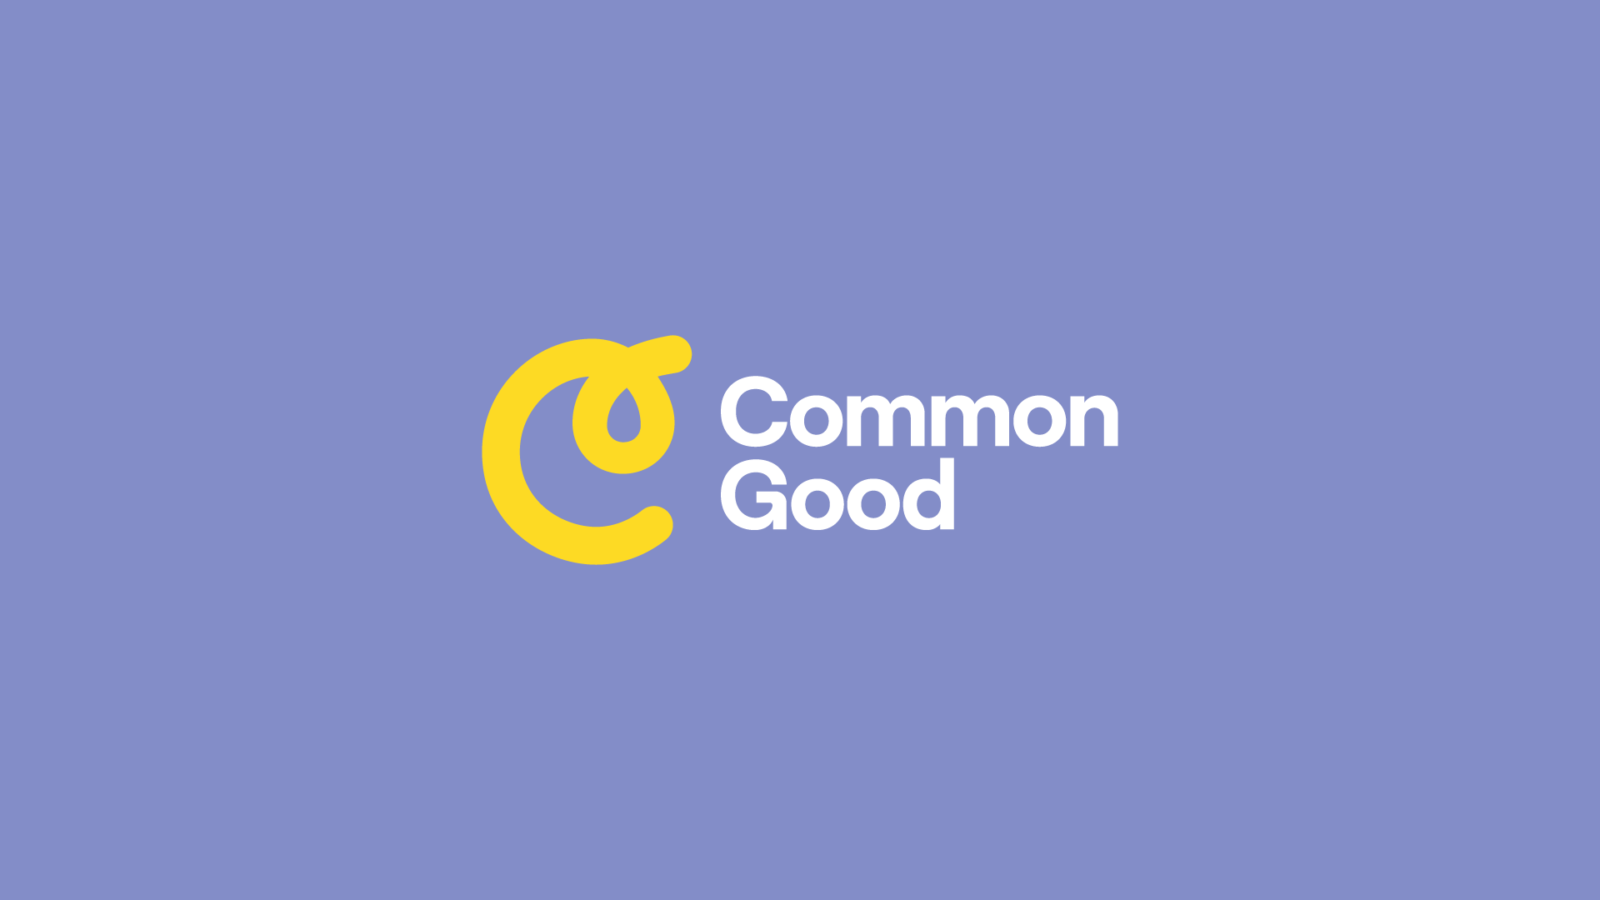 Common Good Logo in yellow on purple